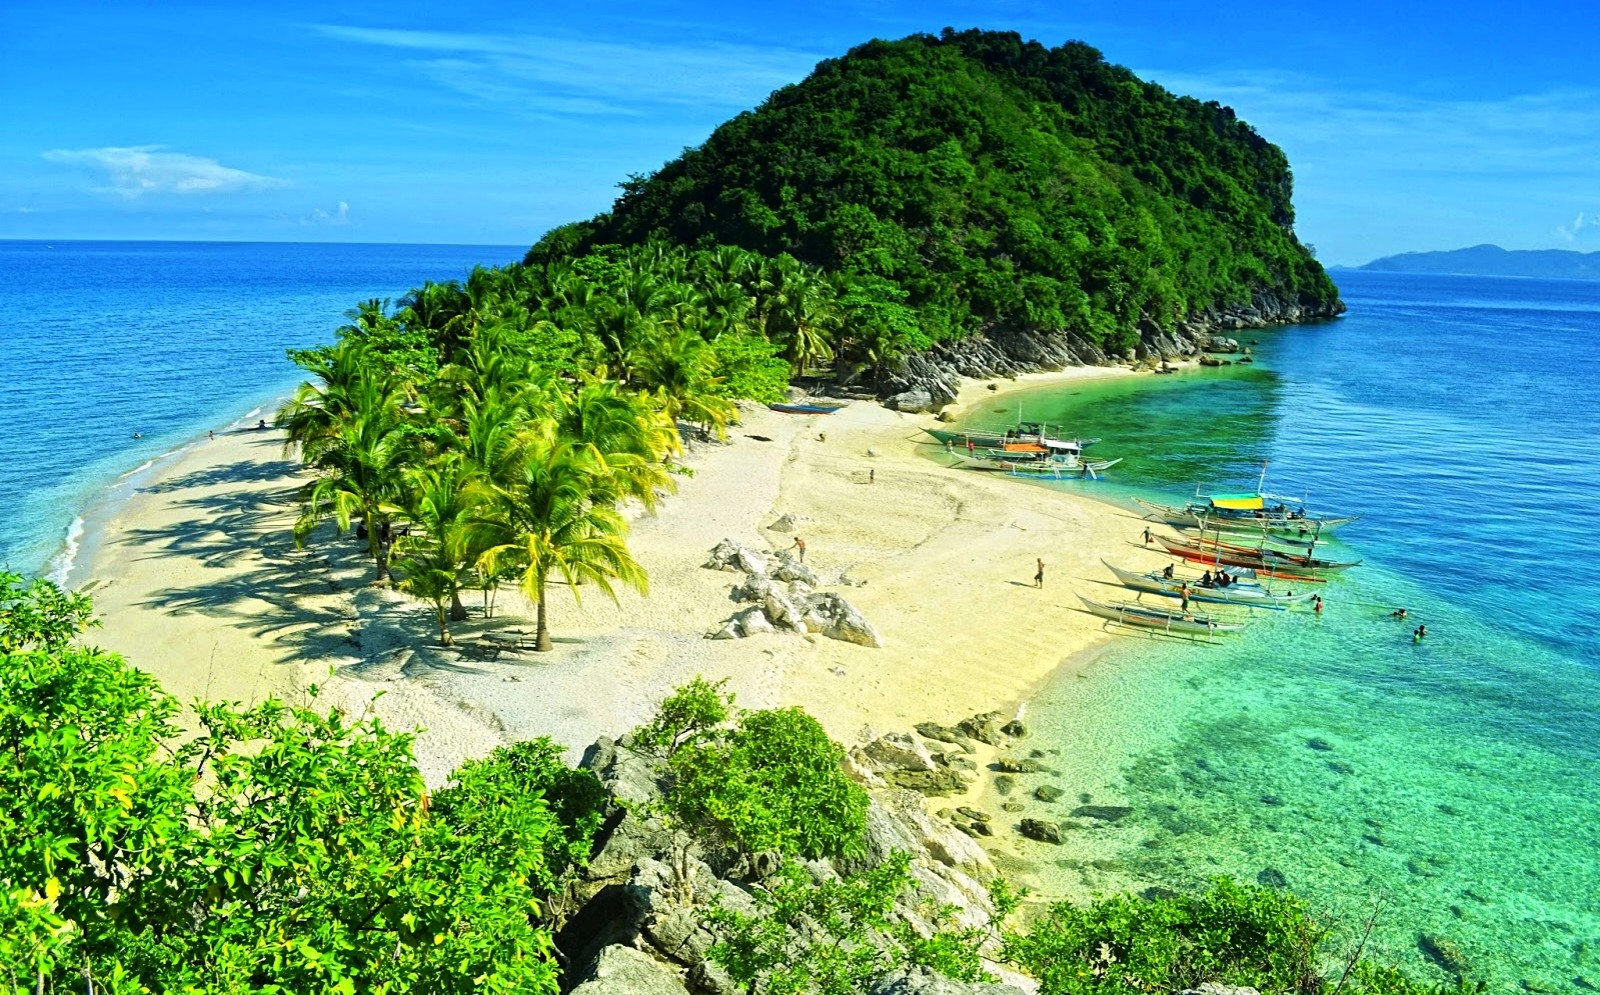 Hd Tropical Island Beach Paradise Wallpapers And Backgrounds: Beach In The Phillipines Wallpaper And Background Image